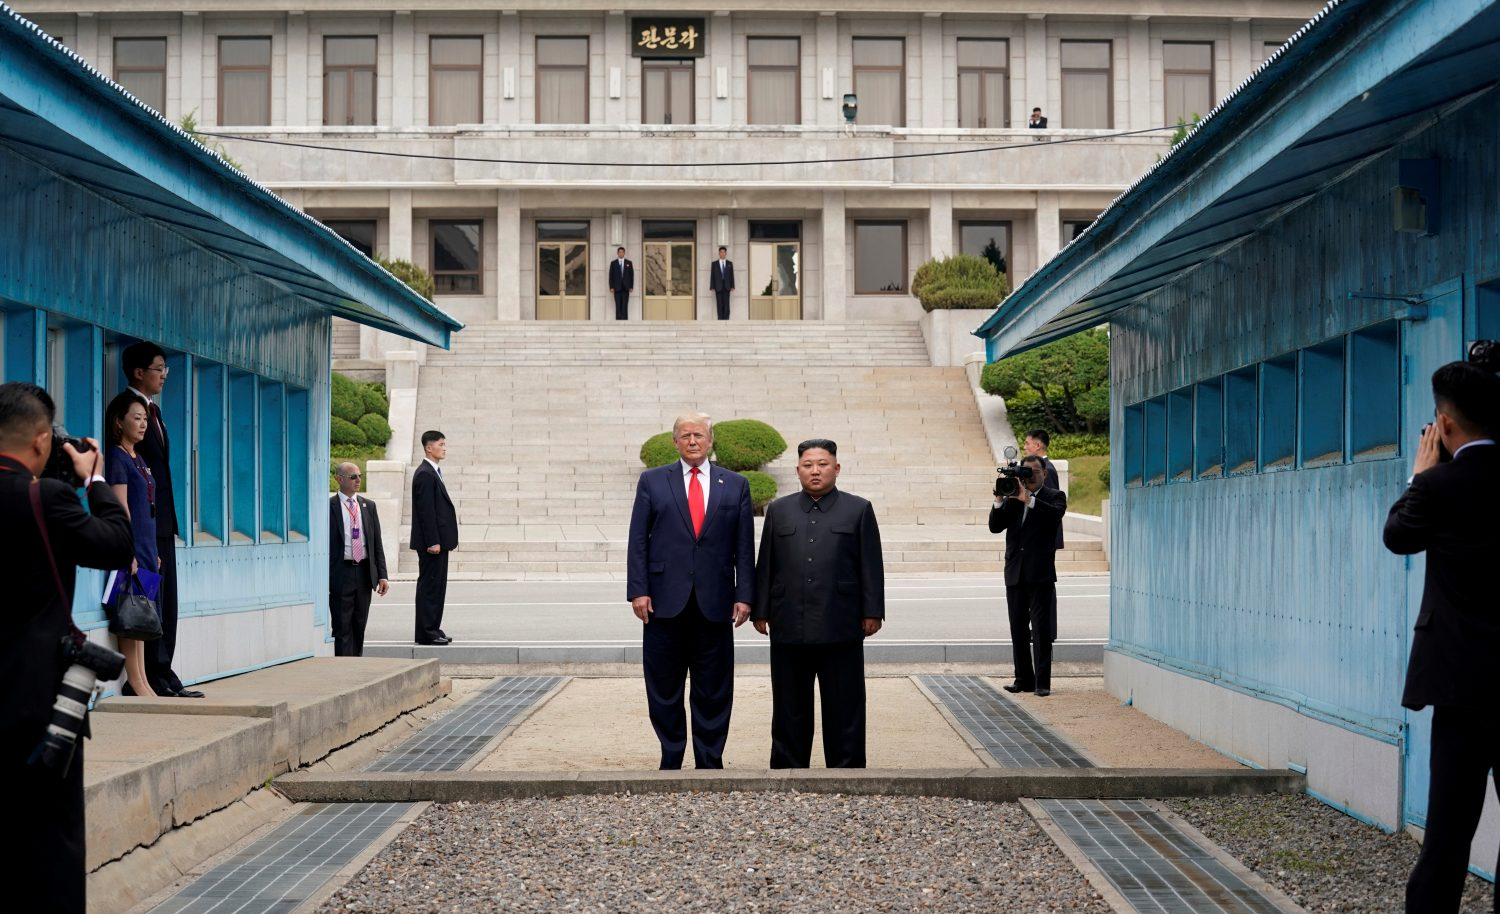 FILE PHOTO: U.S. President Donald Trump and North Korean leader Kim Jong Un stand at the demarcation line in the demilitarized zone separating the two Koreas, in Panmunjom, South Korea, June 30, 2019. REUTERS/Kevin Lamarque/File Photo